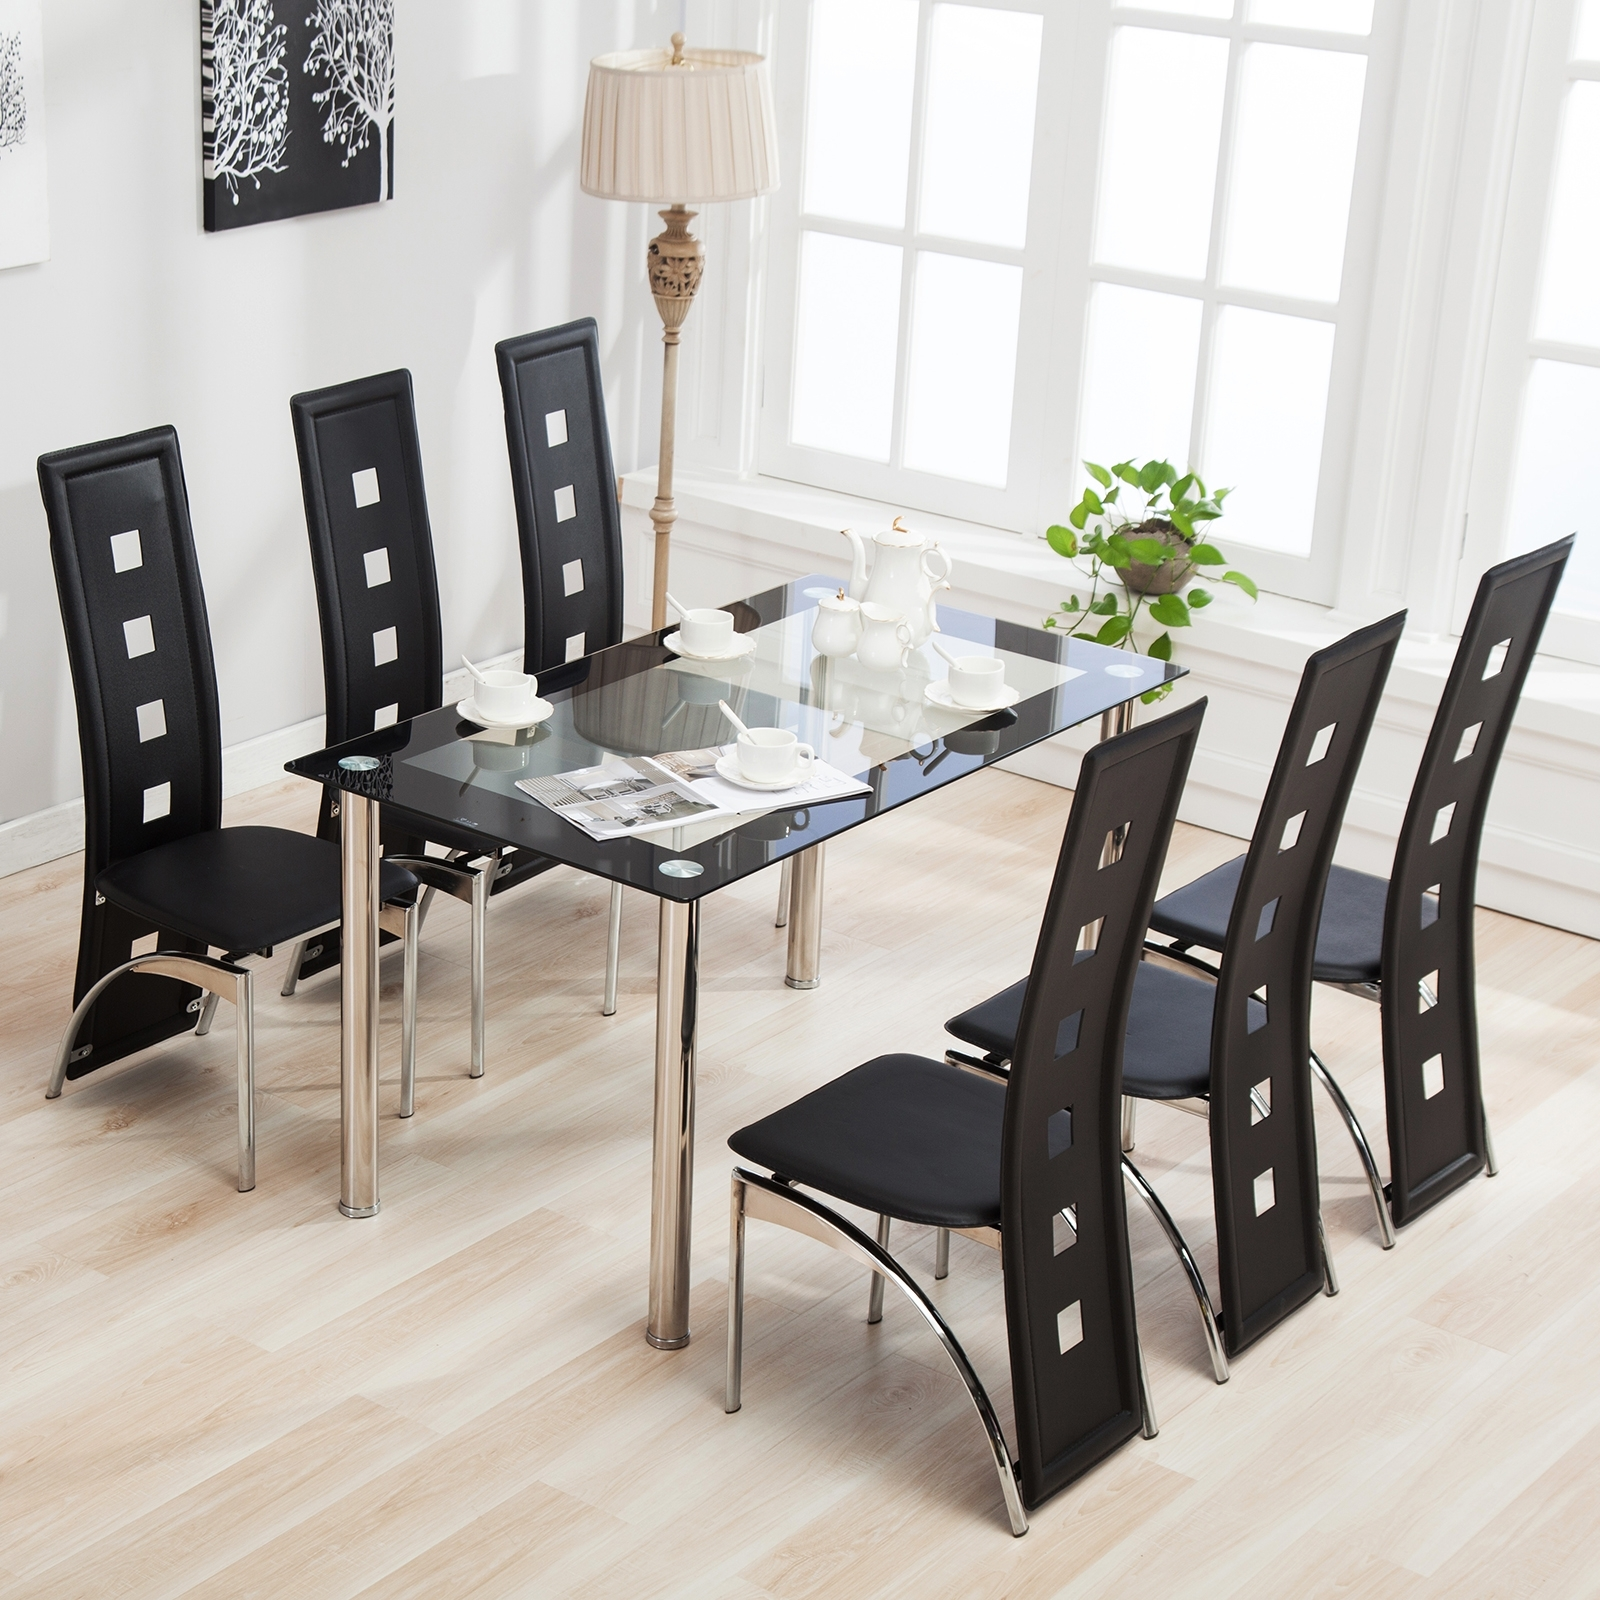 Latest 6 Chair Dining Table Sets Pertaining To Mecor 7Pcs Dining Table Set 6 Chairs Glass Metal Kitchen Room (View 14 of 25)